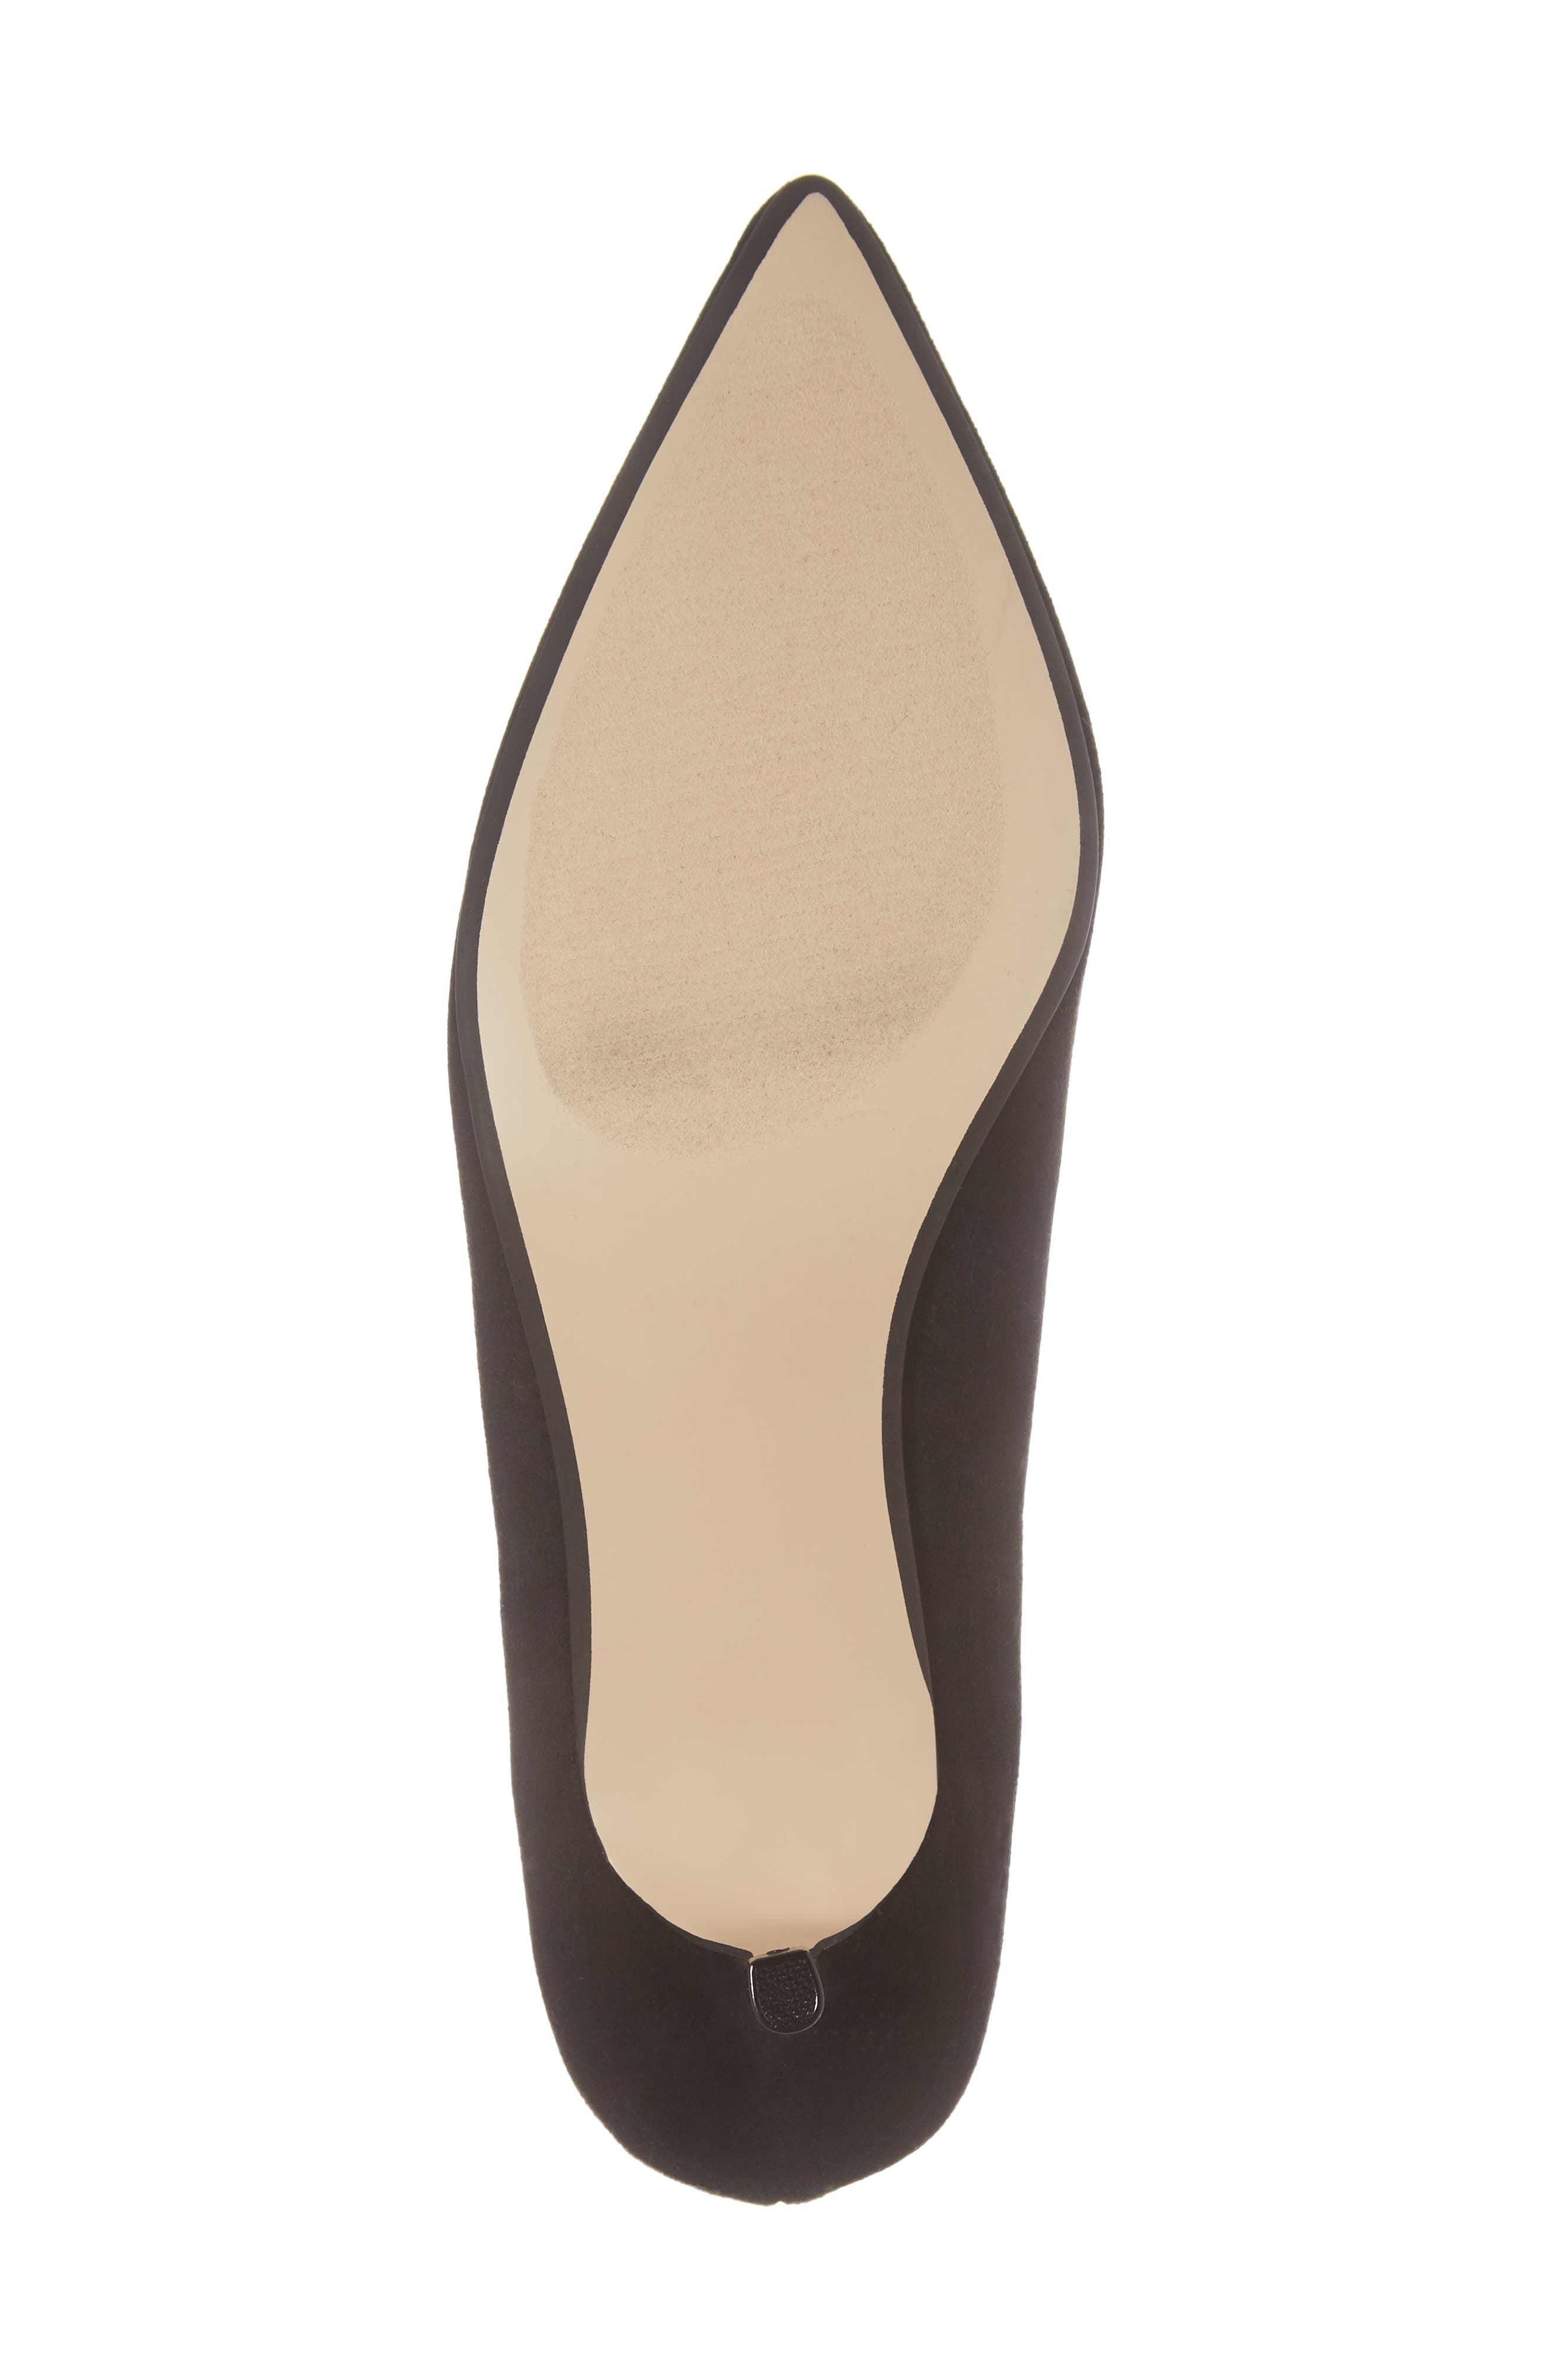 Stormm Pointy Toe Pump,                             Alternate thumbnail 6, color,                             003